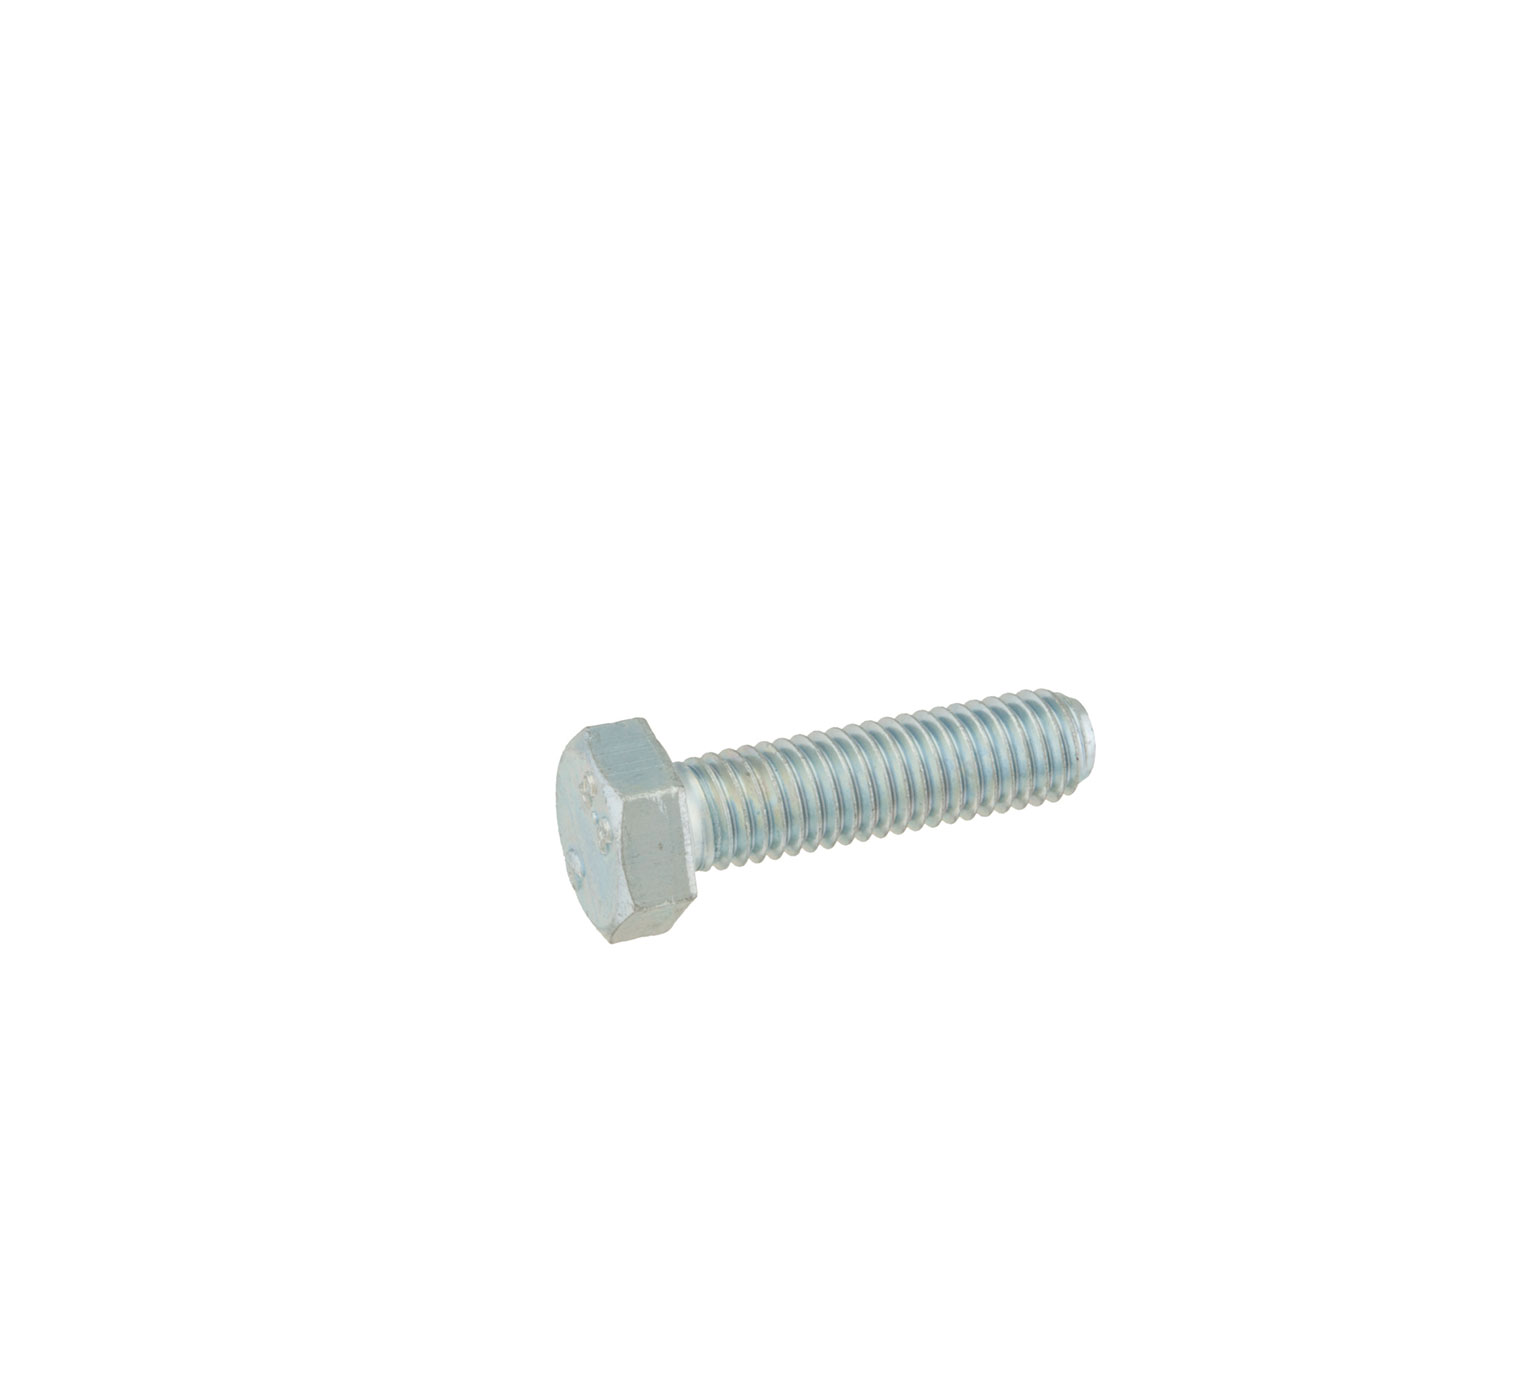 76570 Steel Hex Screw - M8 Thread x 1.19 in alt 1